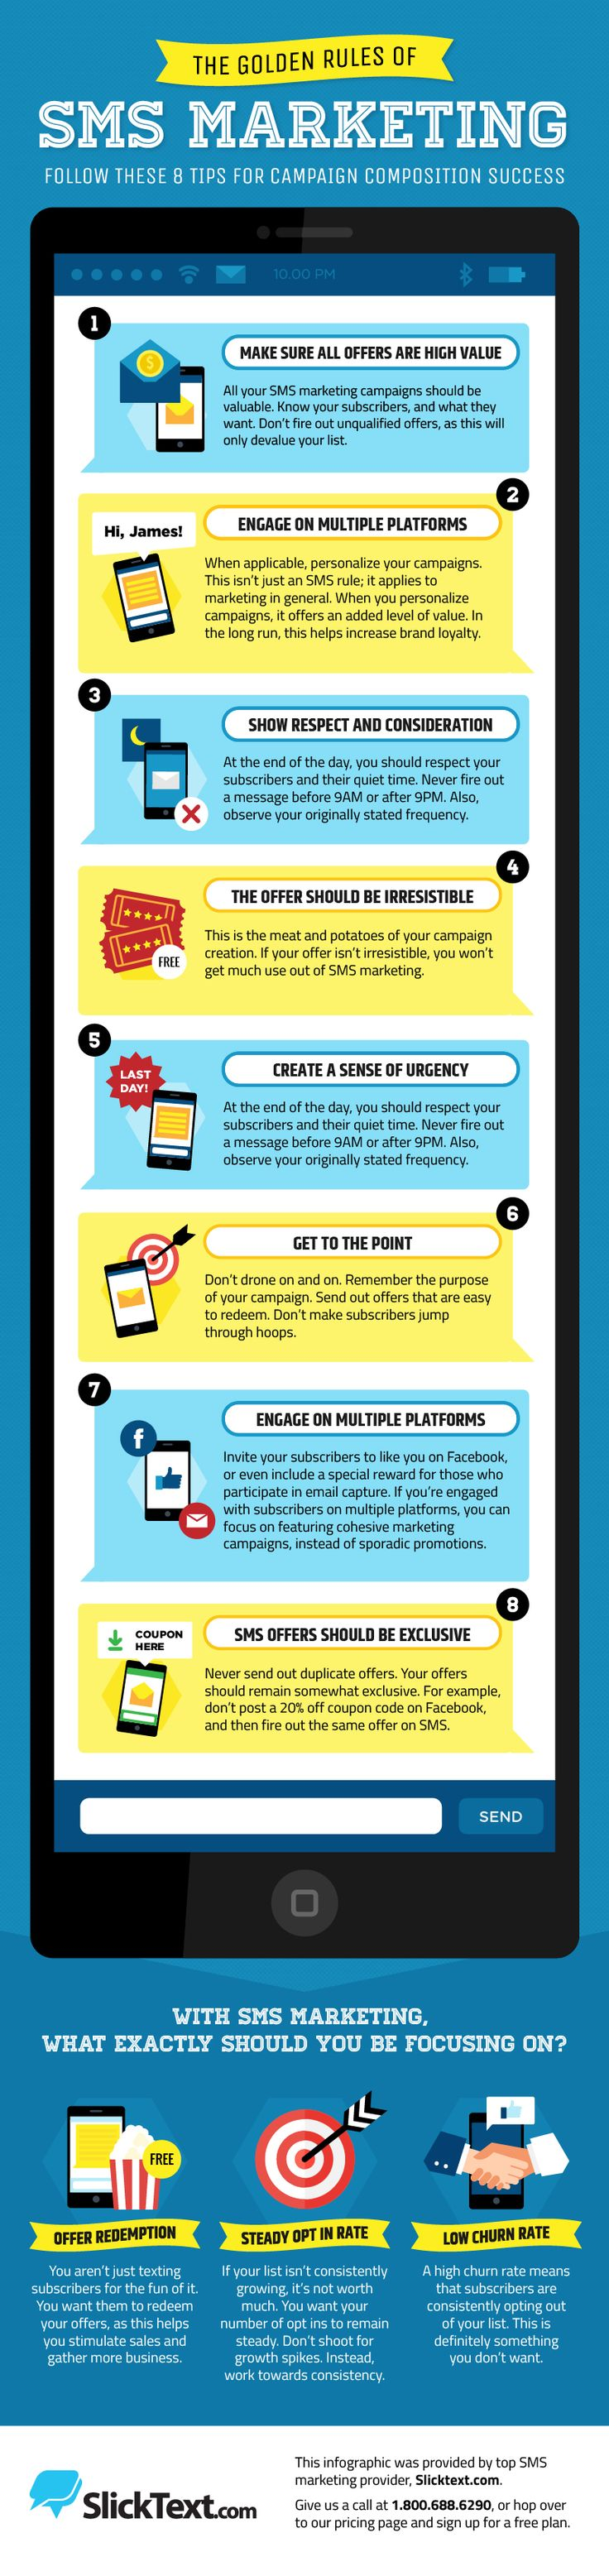 The Golden Rule of SMS Marketing #Infographic #Marketing